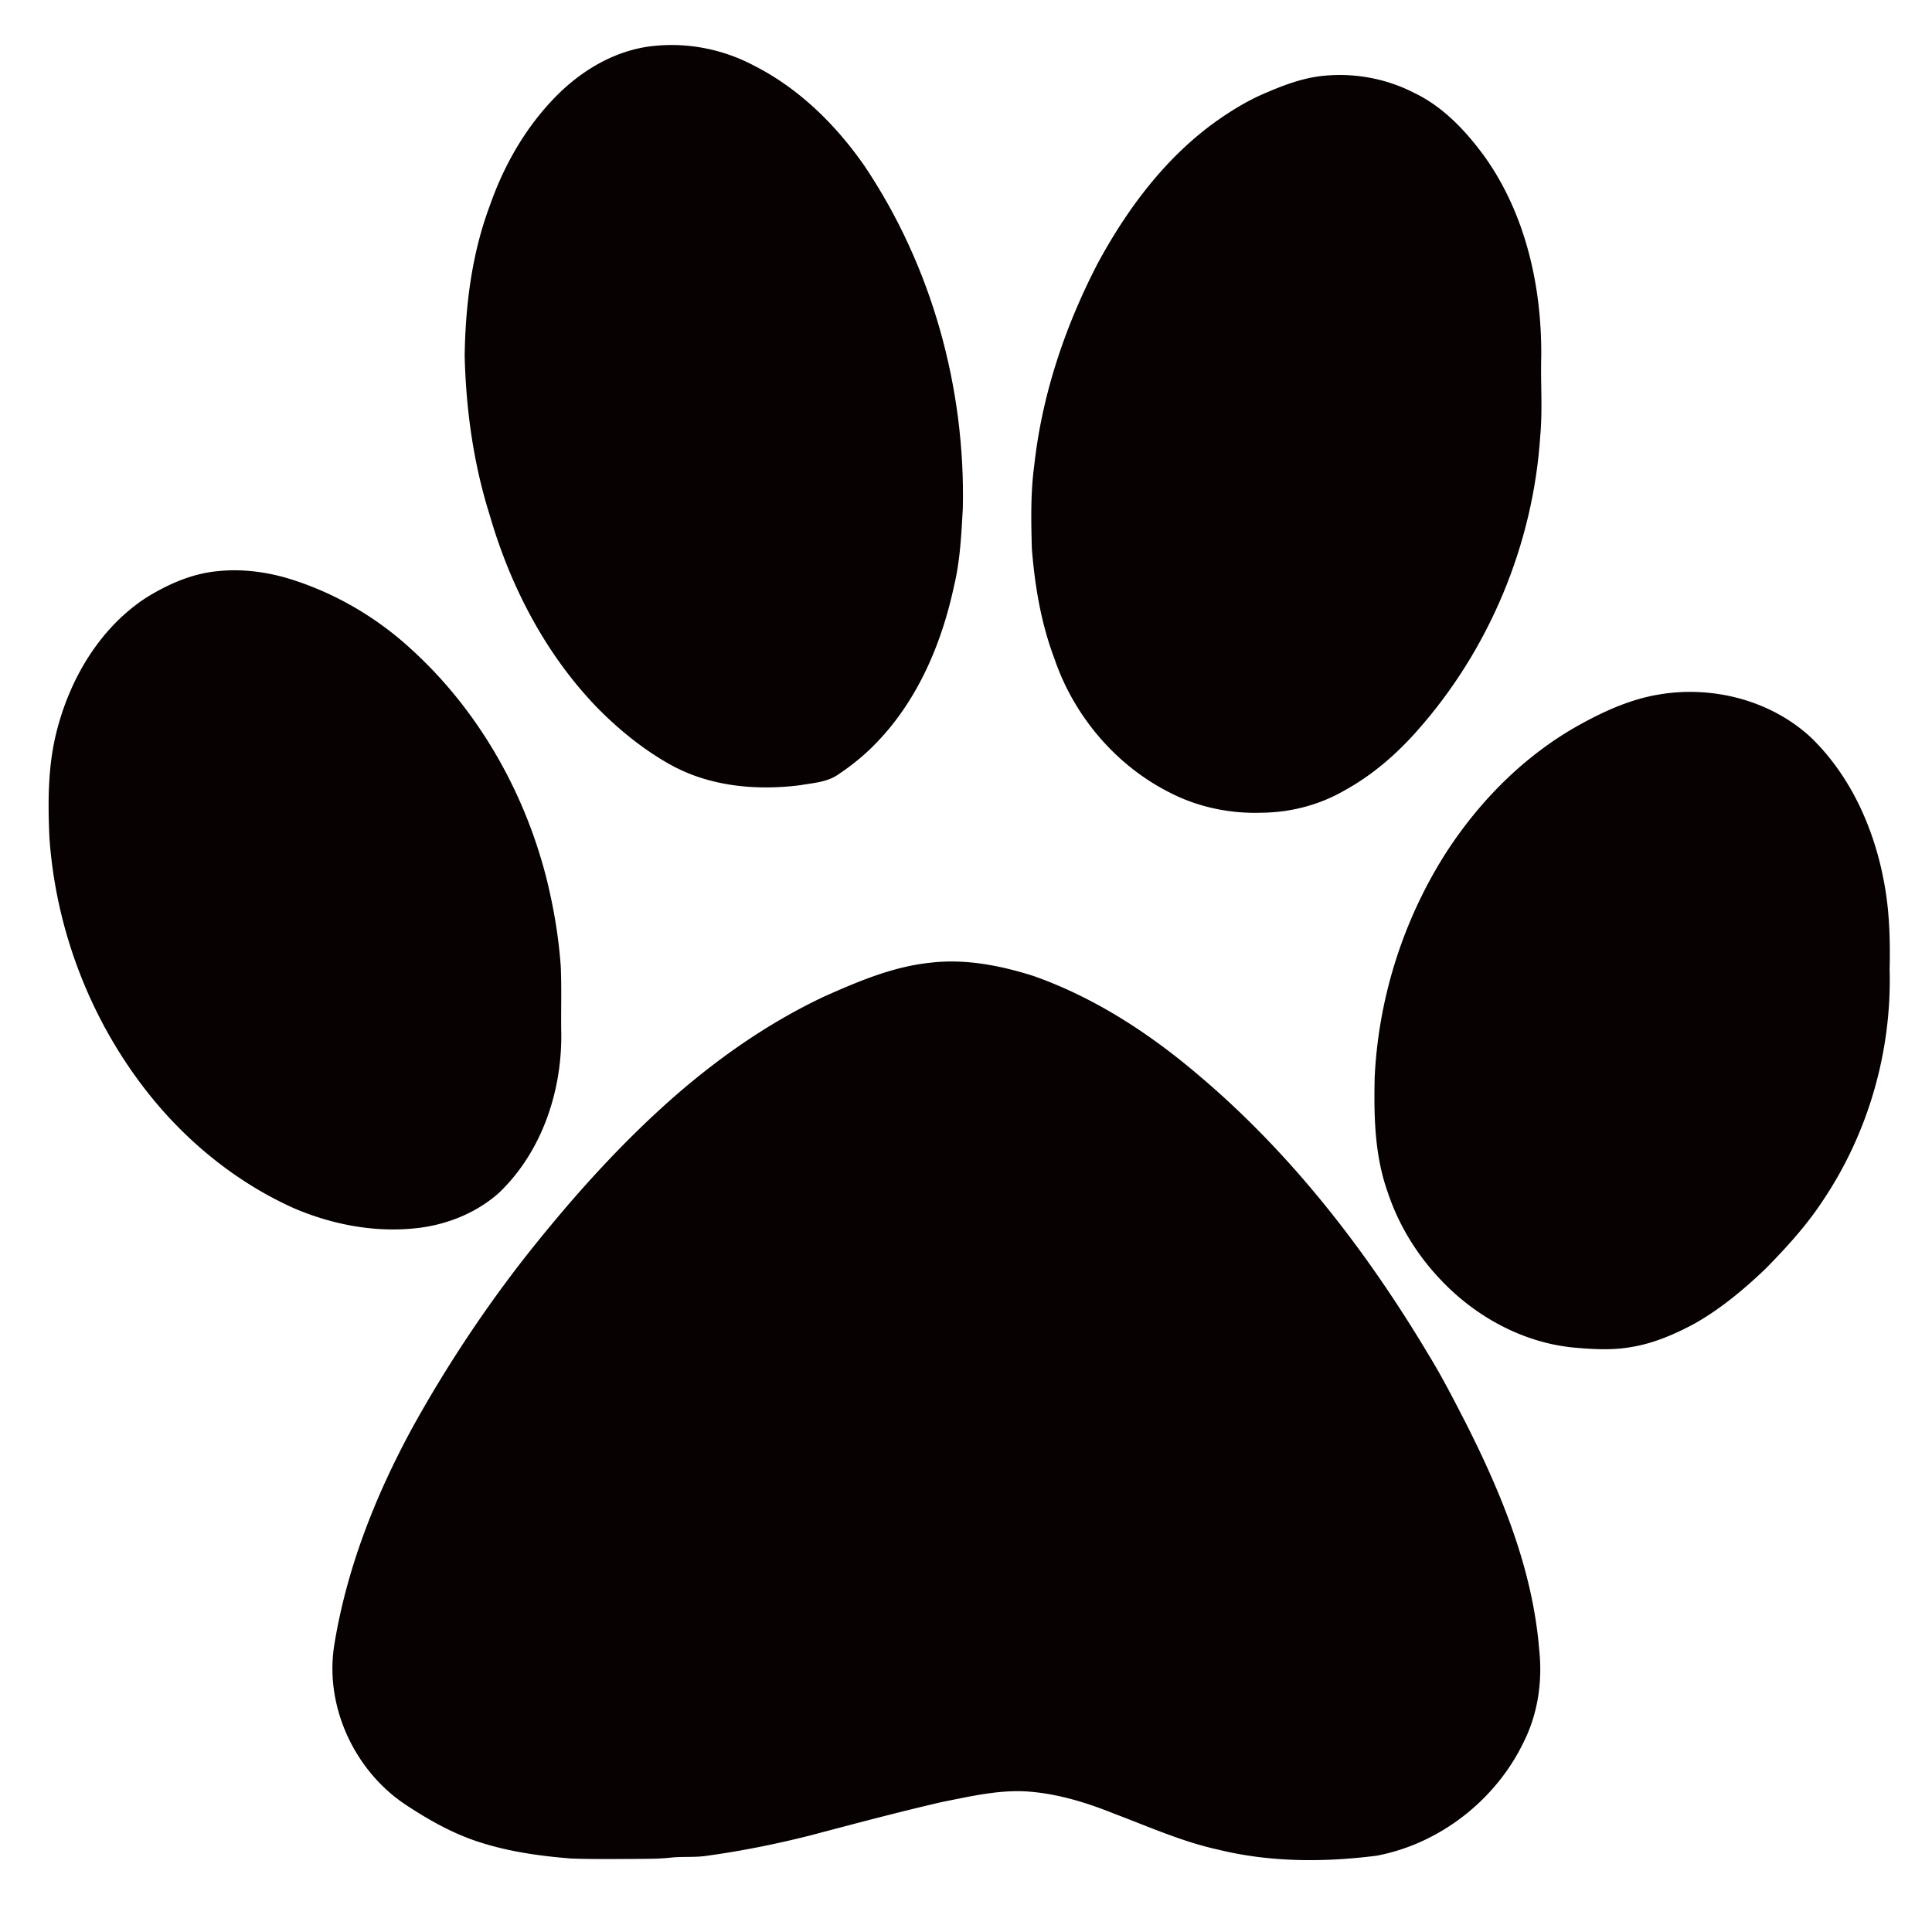 freeuse library Cougar Paw Print Clipart